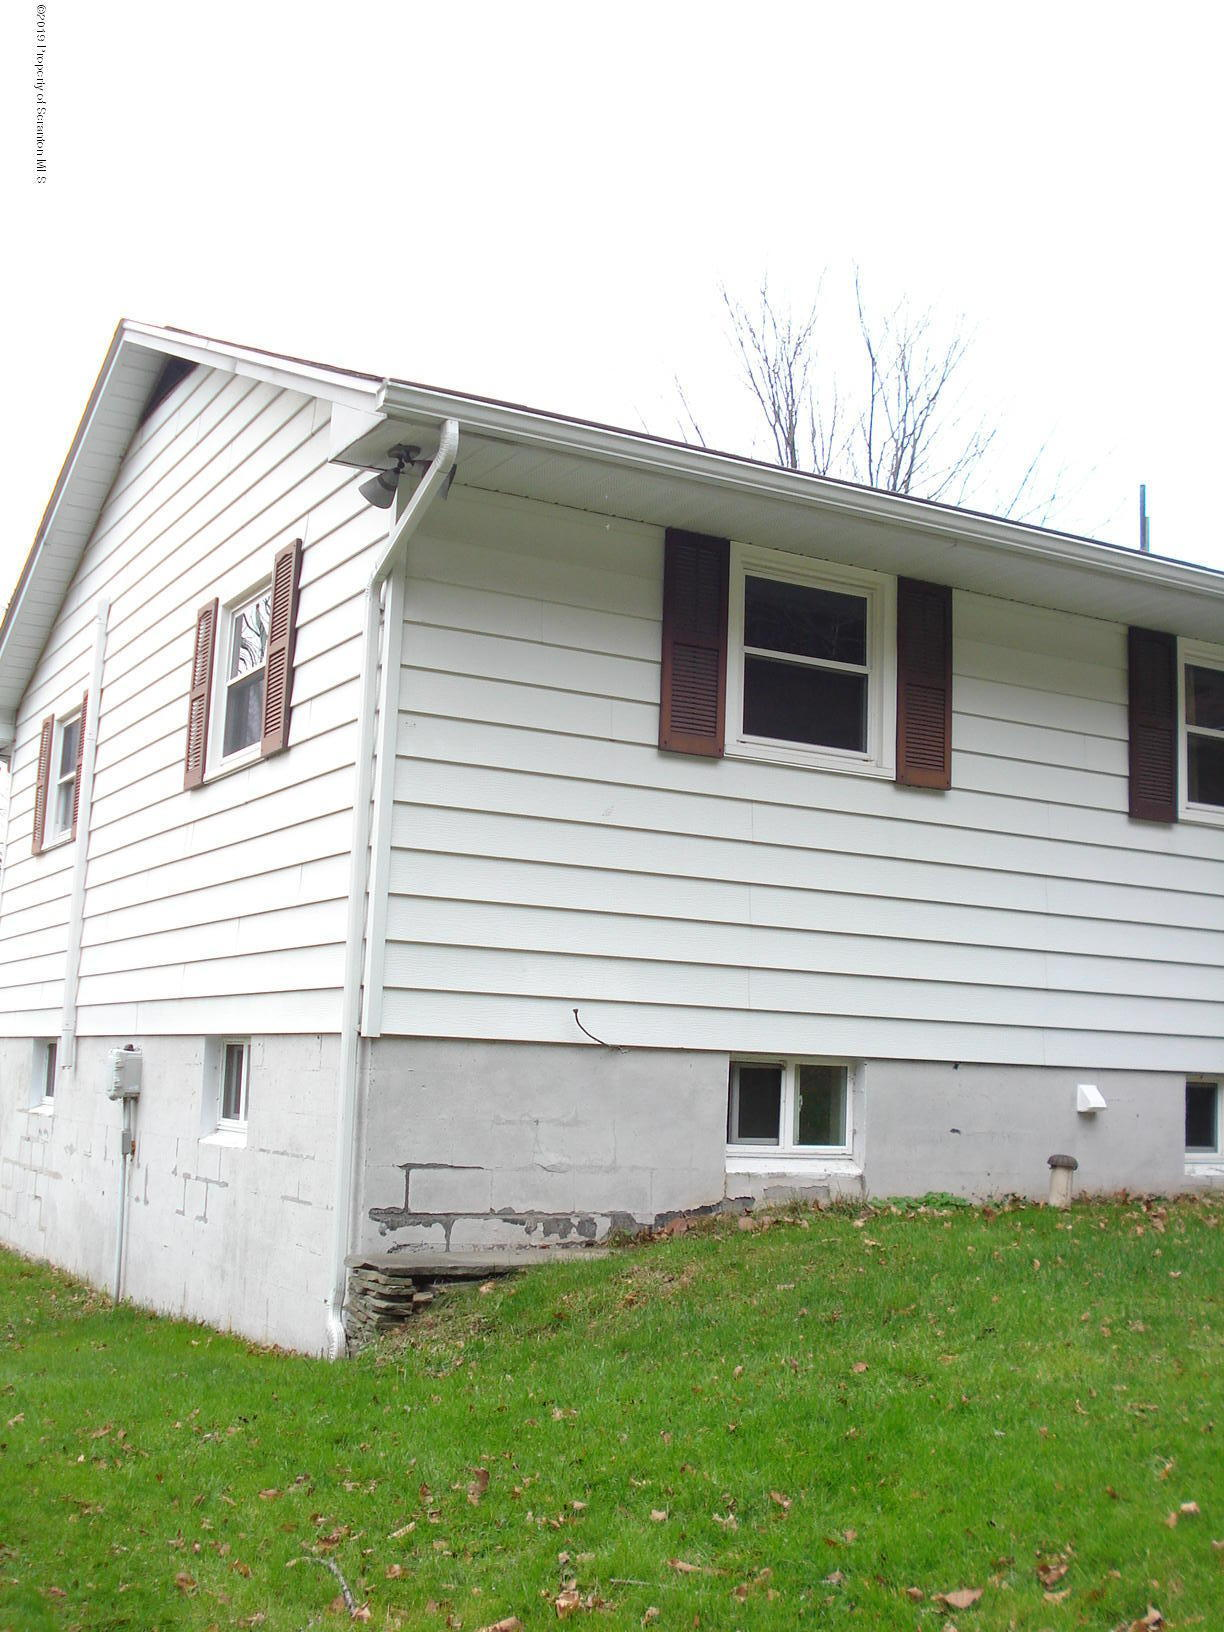 144 Green Grove Road, Scott Twp, Pennsylvania 18447, 3 Bedrooms Bedrooms, 8 Rooms Rooms,1 BathroomBathrooms,Single Family,For Sale,Green Grove,19-5375